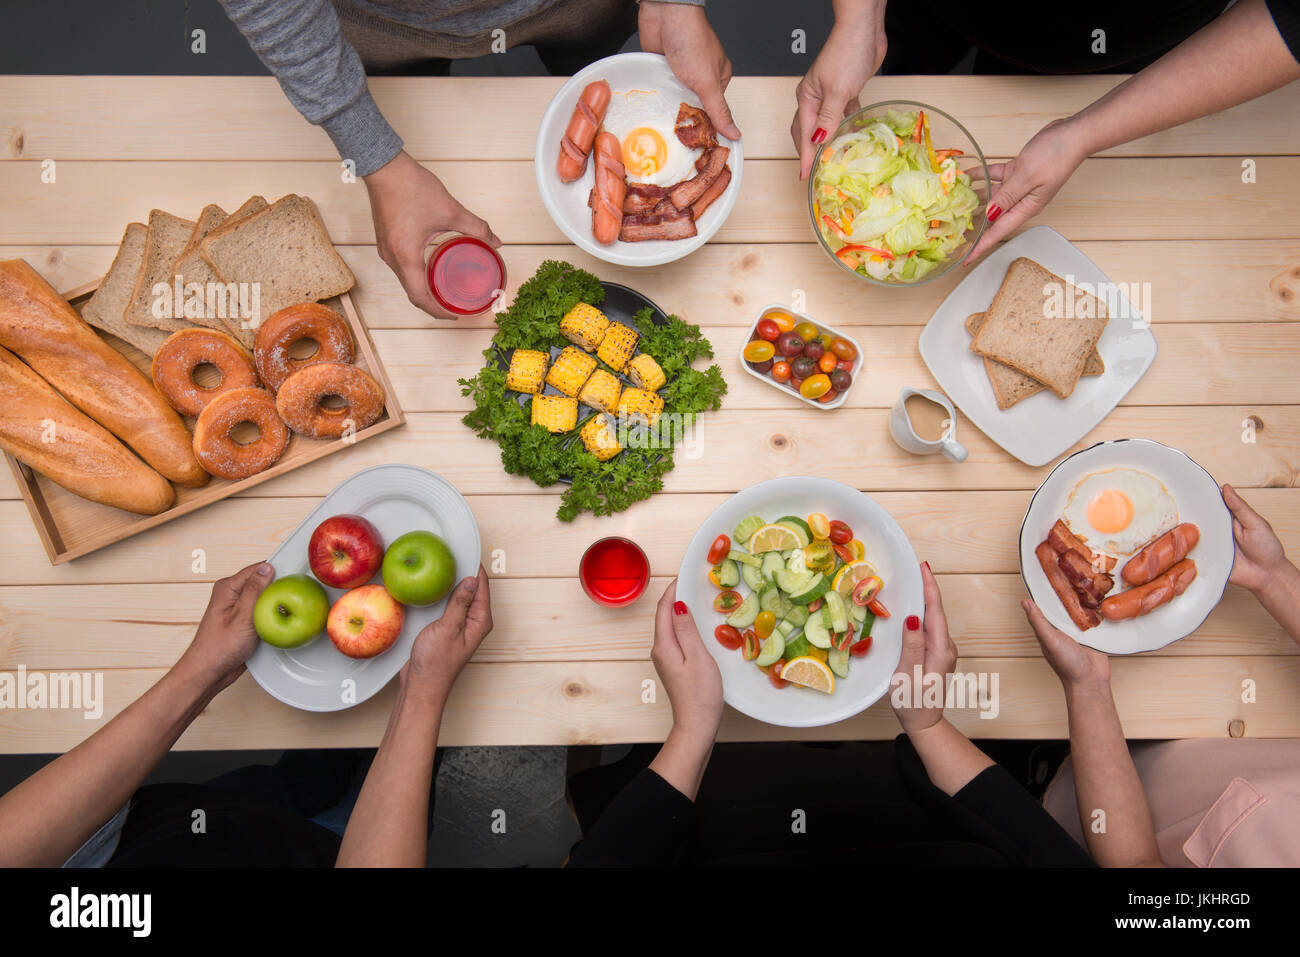 Enjoying dinner with friends.  Top view of group of people having dinner together while sitting at wooden table - Stock Image